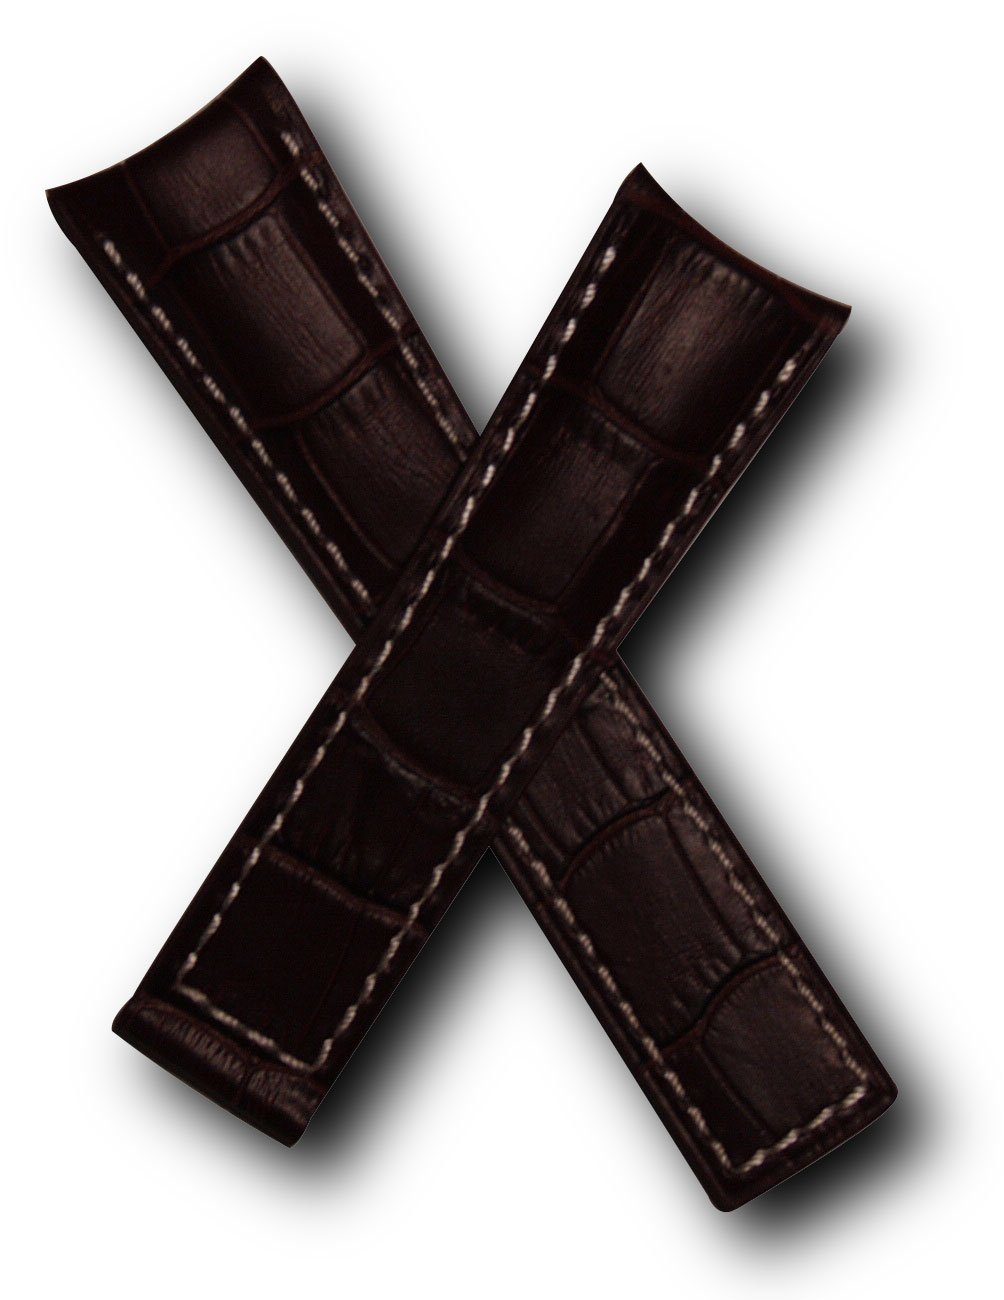 22mm Dark Brown Alligator-style Genuine Leather Watchband with White Stitching to fit TAG Heuer Grand Carrera (Spring bars included)